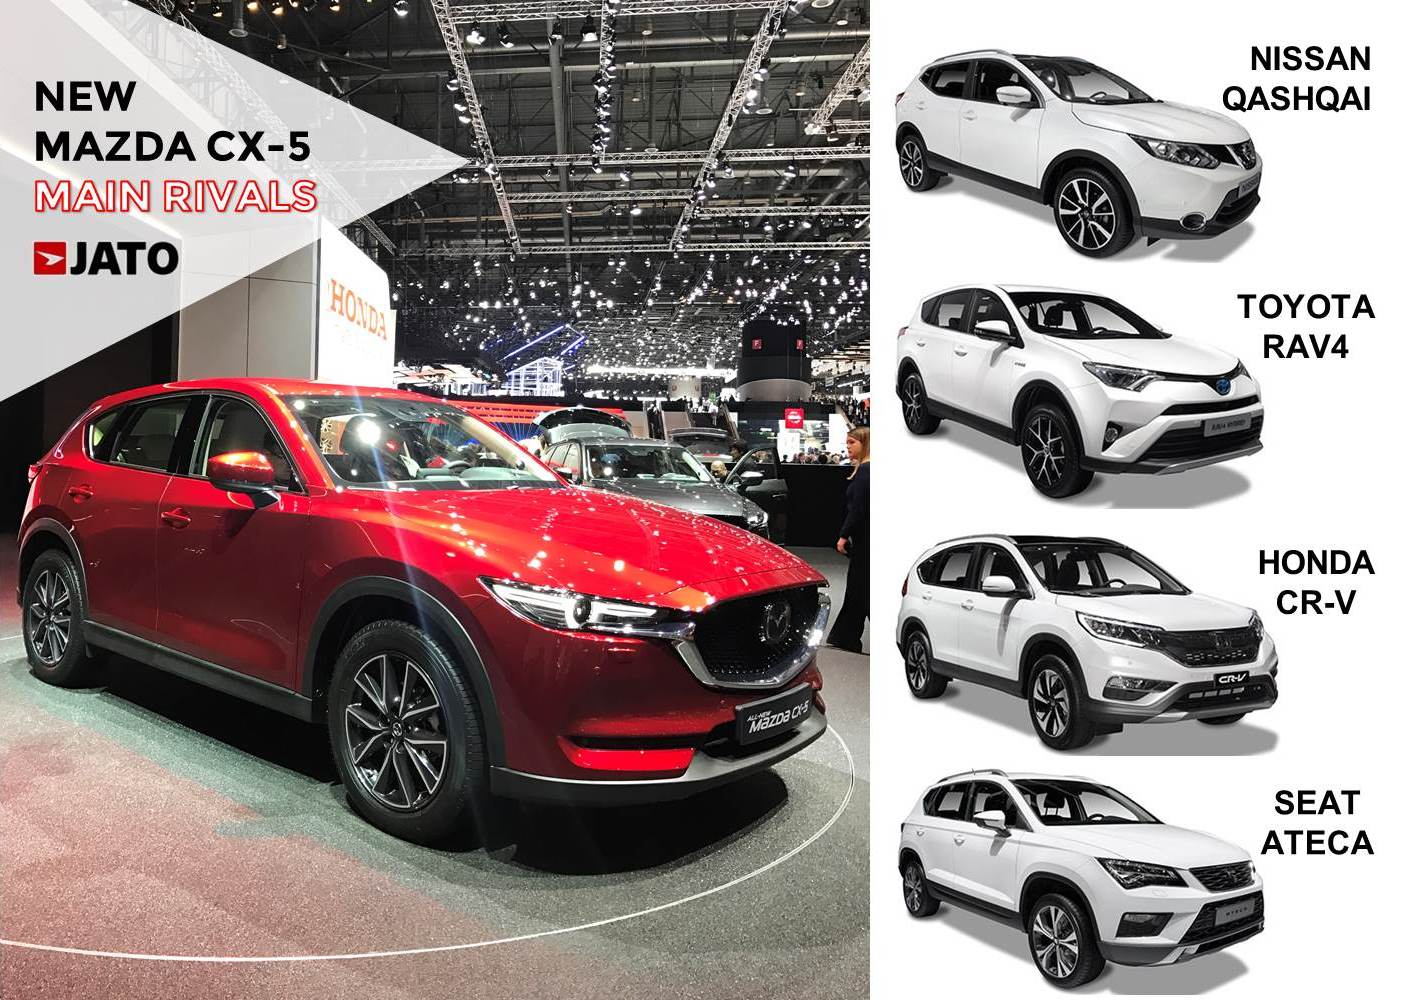 The second generation of the Mazda CX-5 becomes more stylish and elegant. Its forecast (LMC Automotive) indicates that its volumes won't be different from the ones posted by the first generation. In fact, the CX-5 is expected to lose some positions in the ranking because of the arrival of the Peugeot 3008 and Seat Ateca.